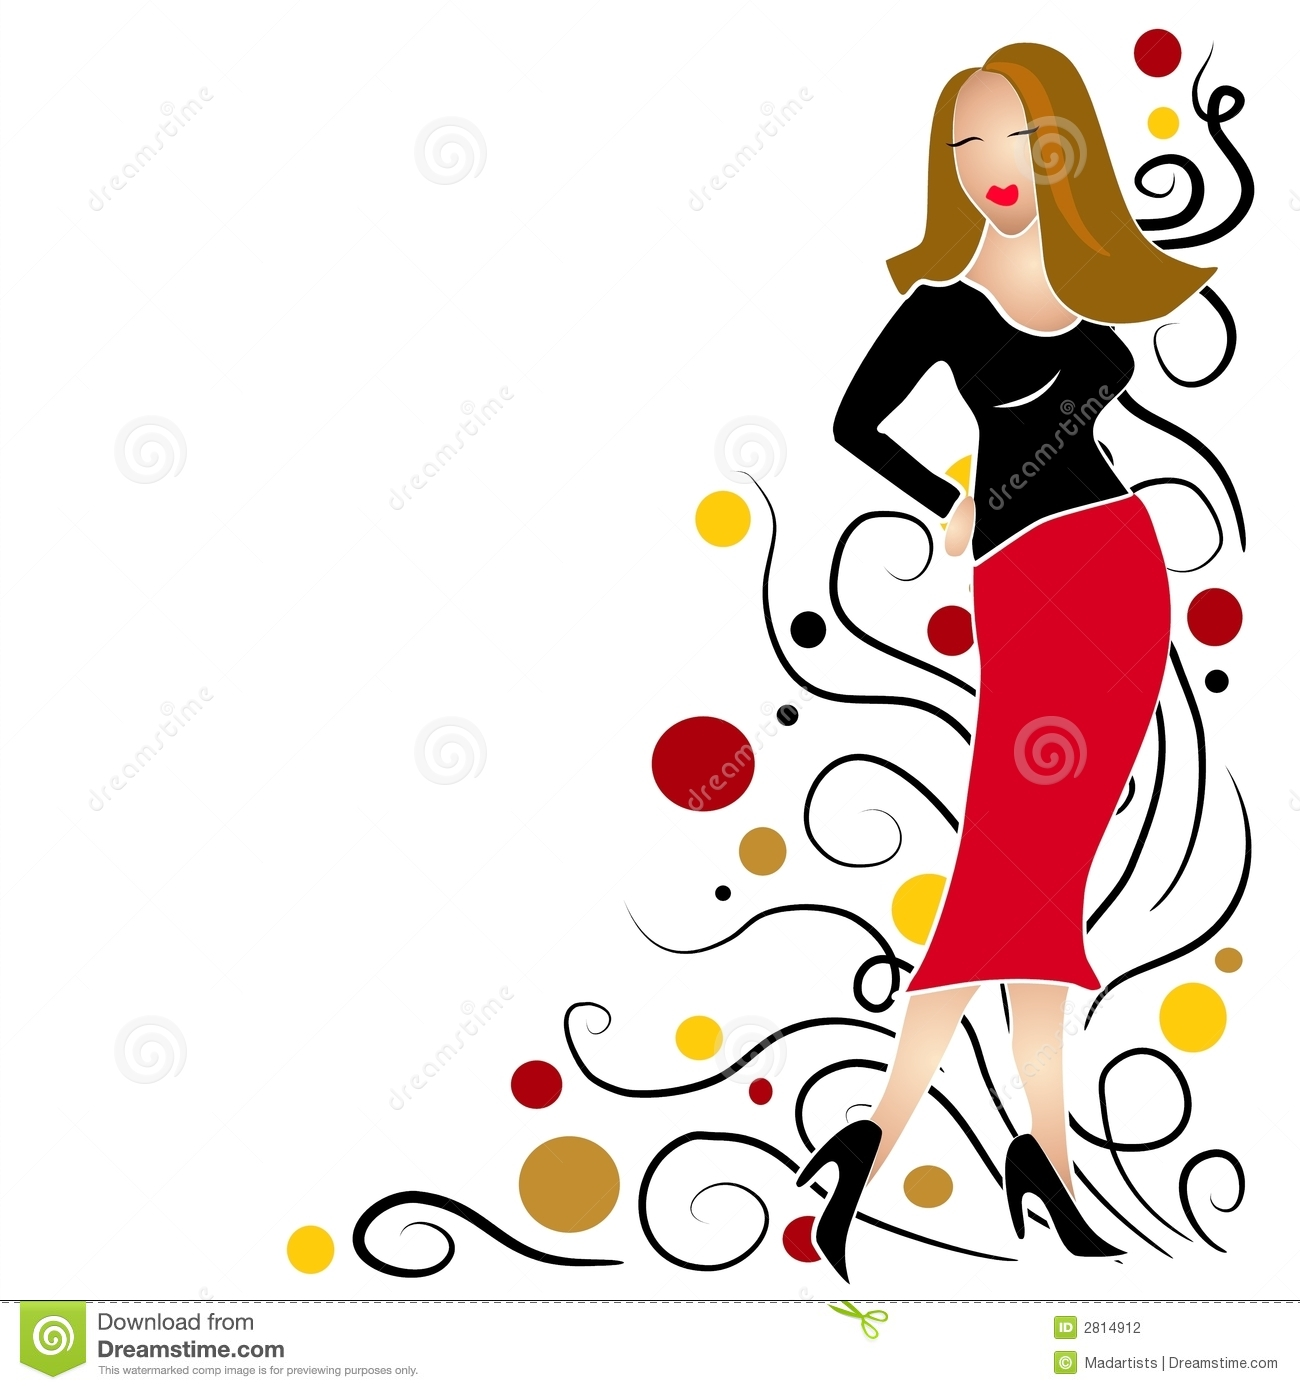 fashion girl clip art brunette stock illustration illustration of rh dreamstime com free girl clip art images free clipart girl singing